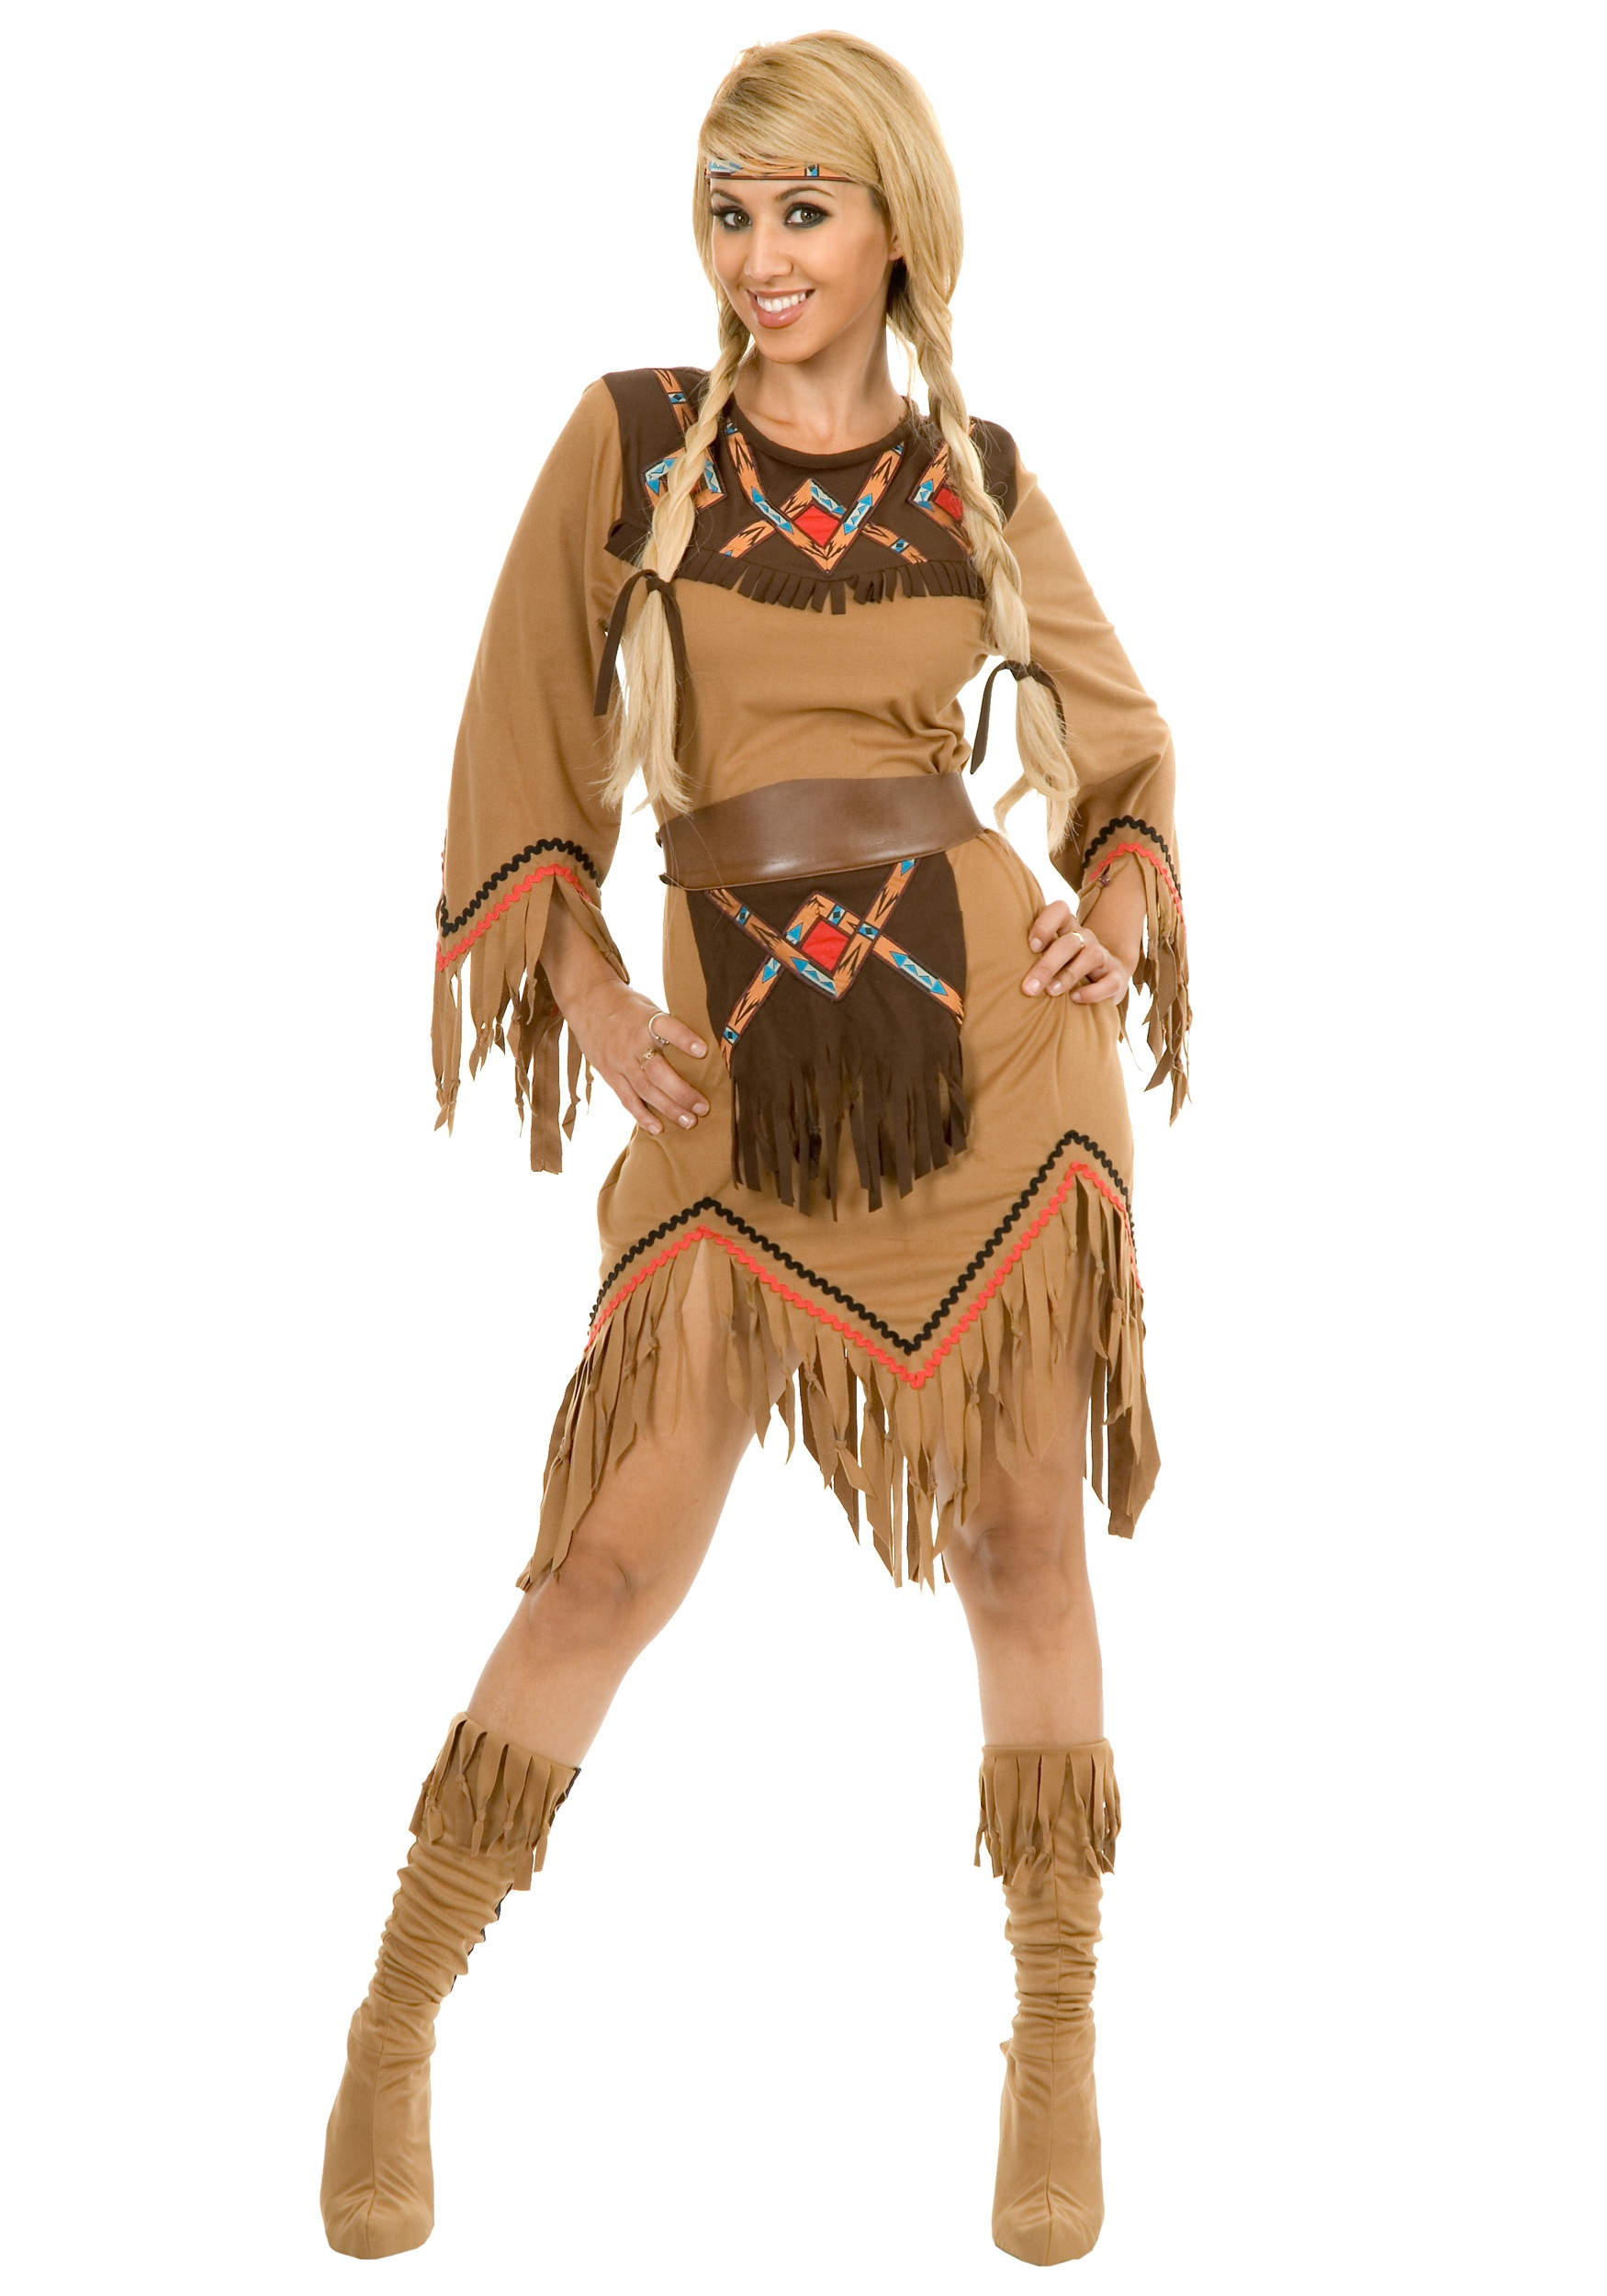 Women's Sacajawea Indian Maiden Costume